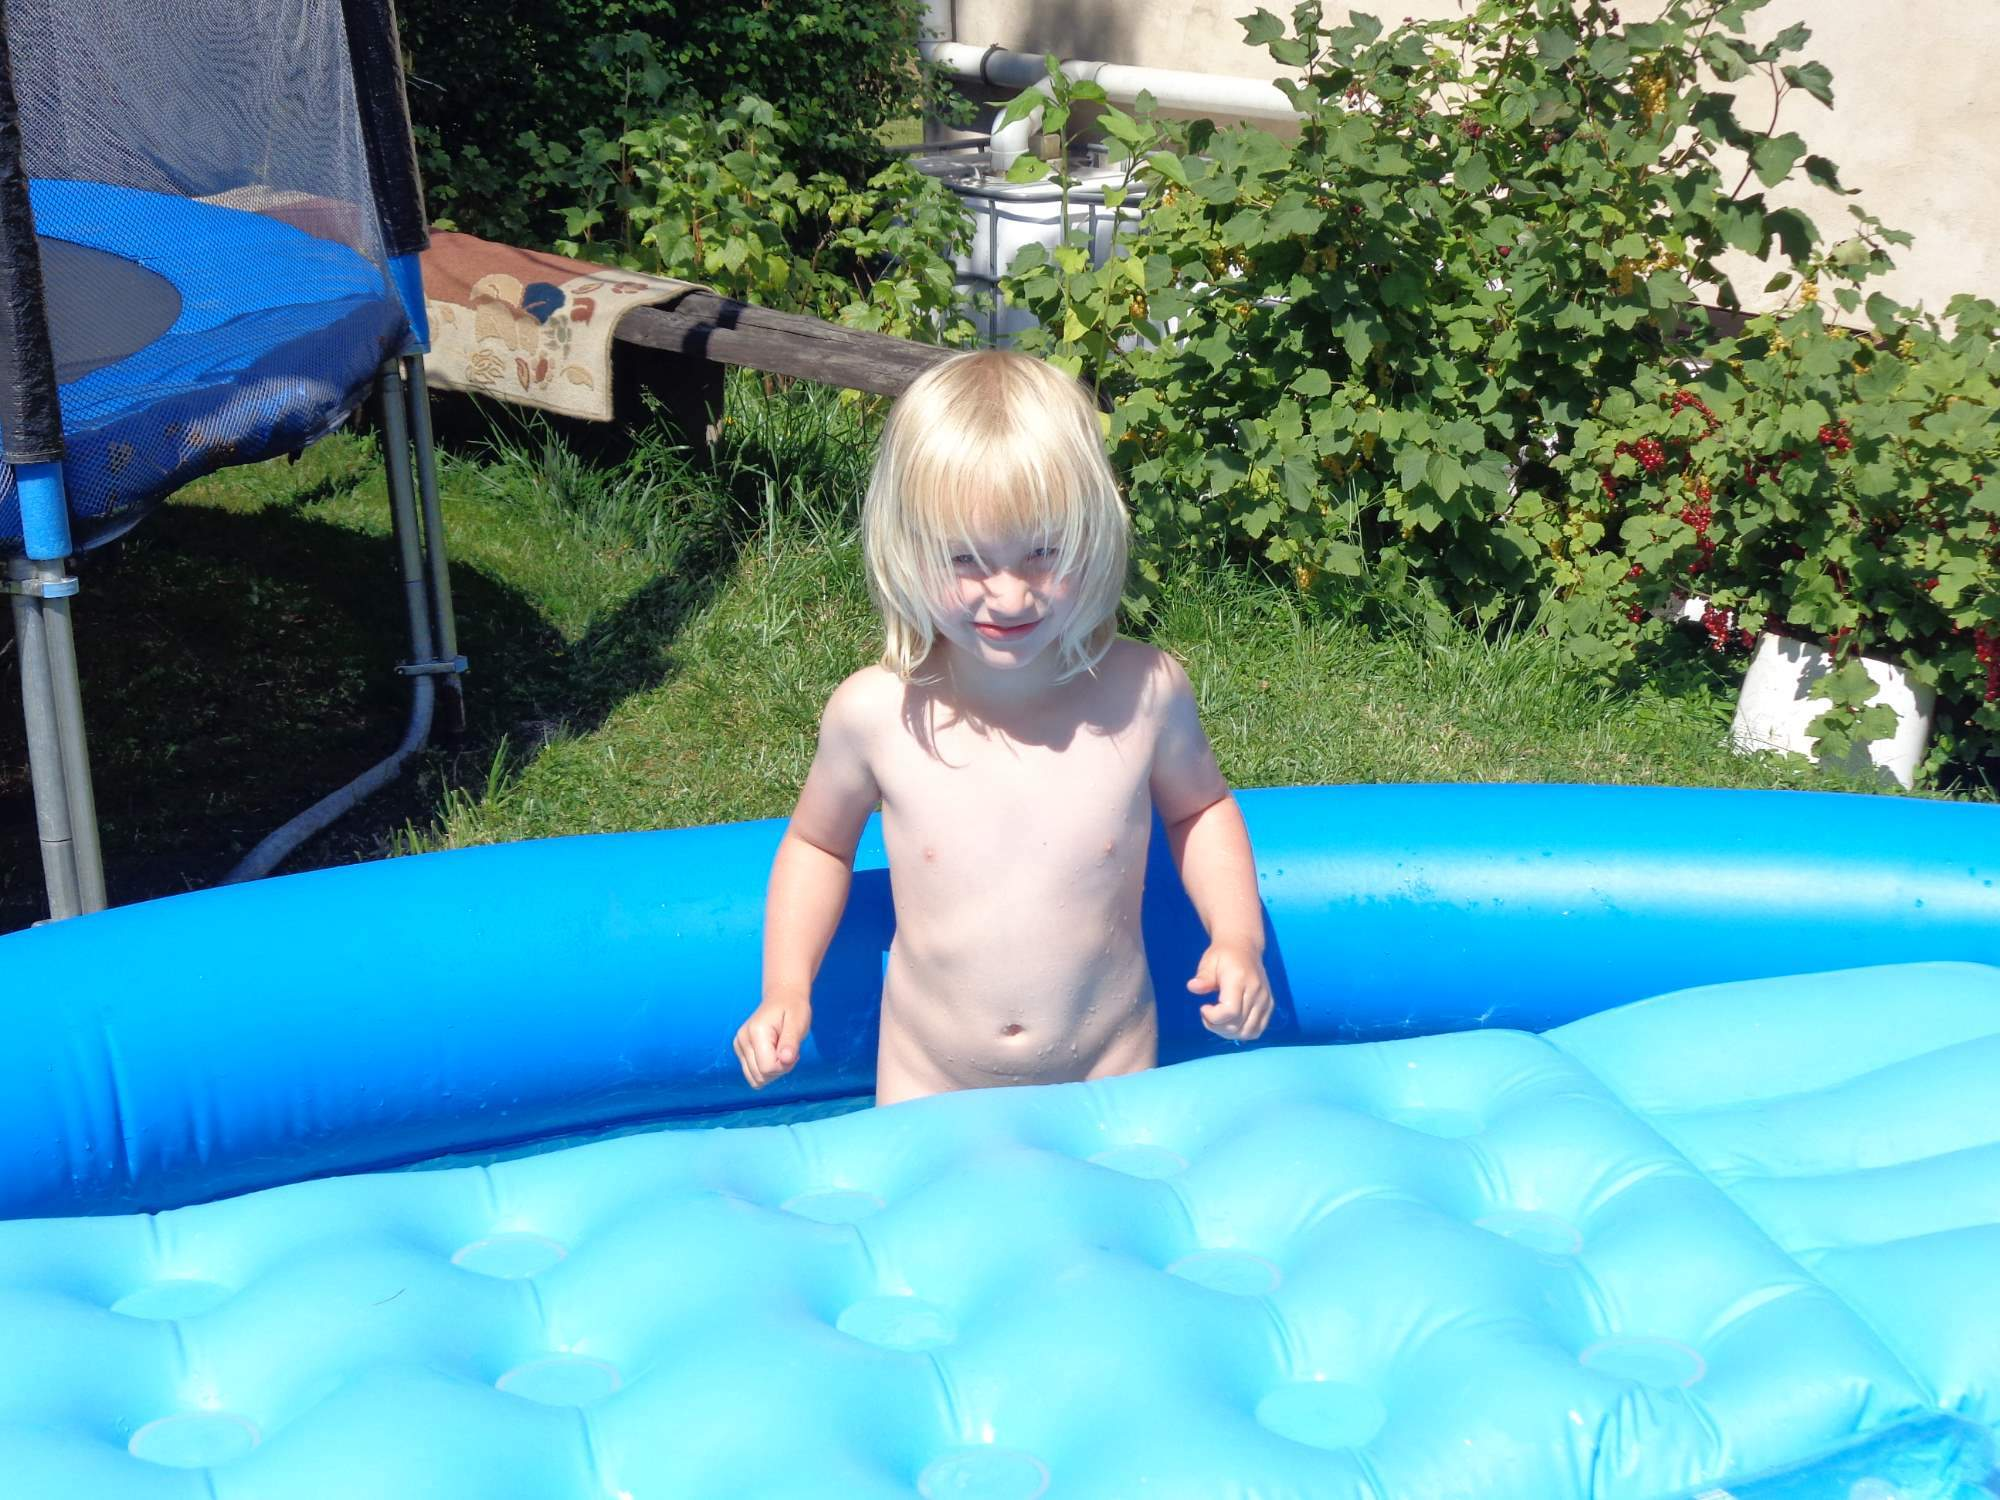 sexinna-naked-toddlers-in-pool-brittany